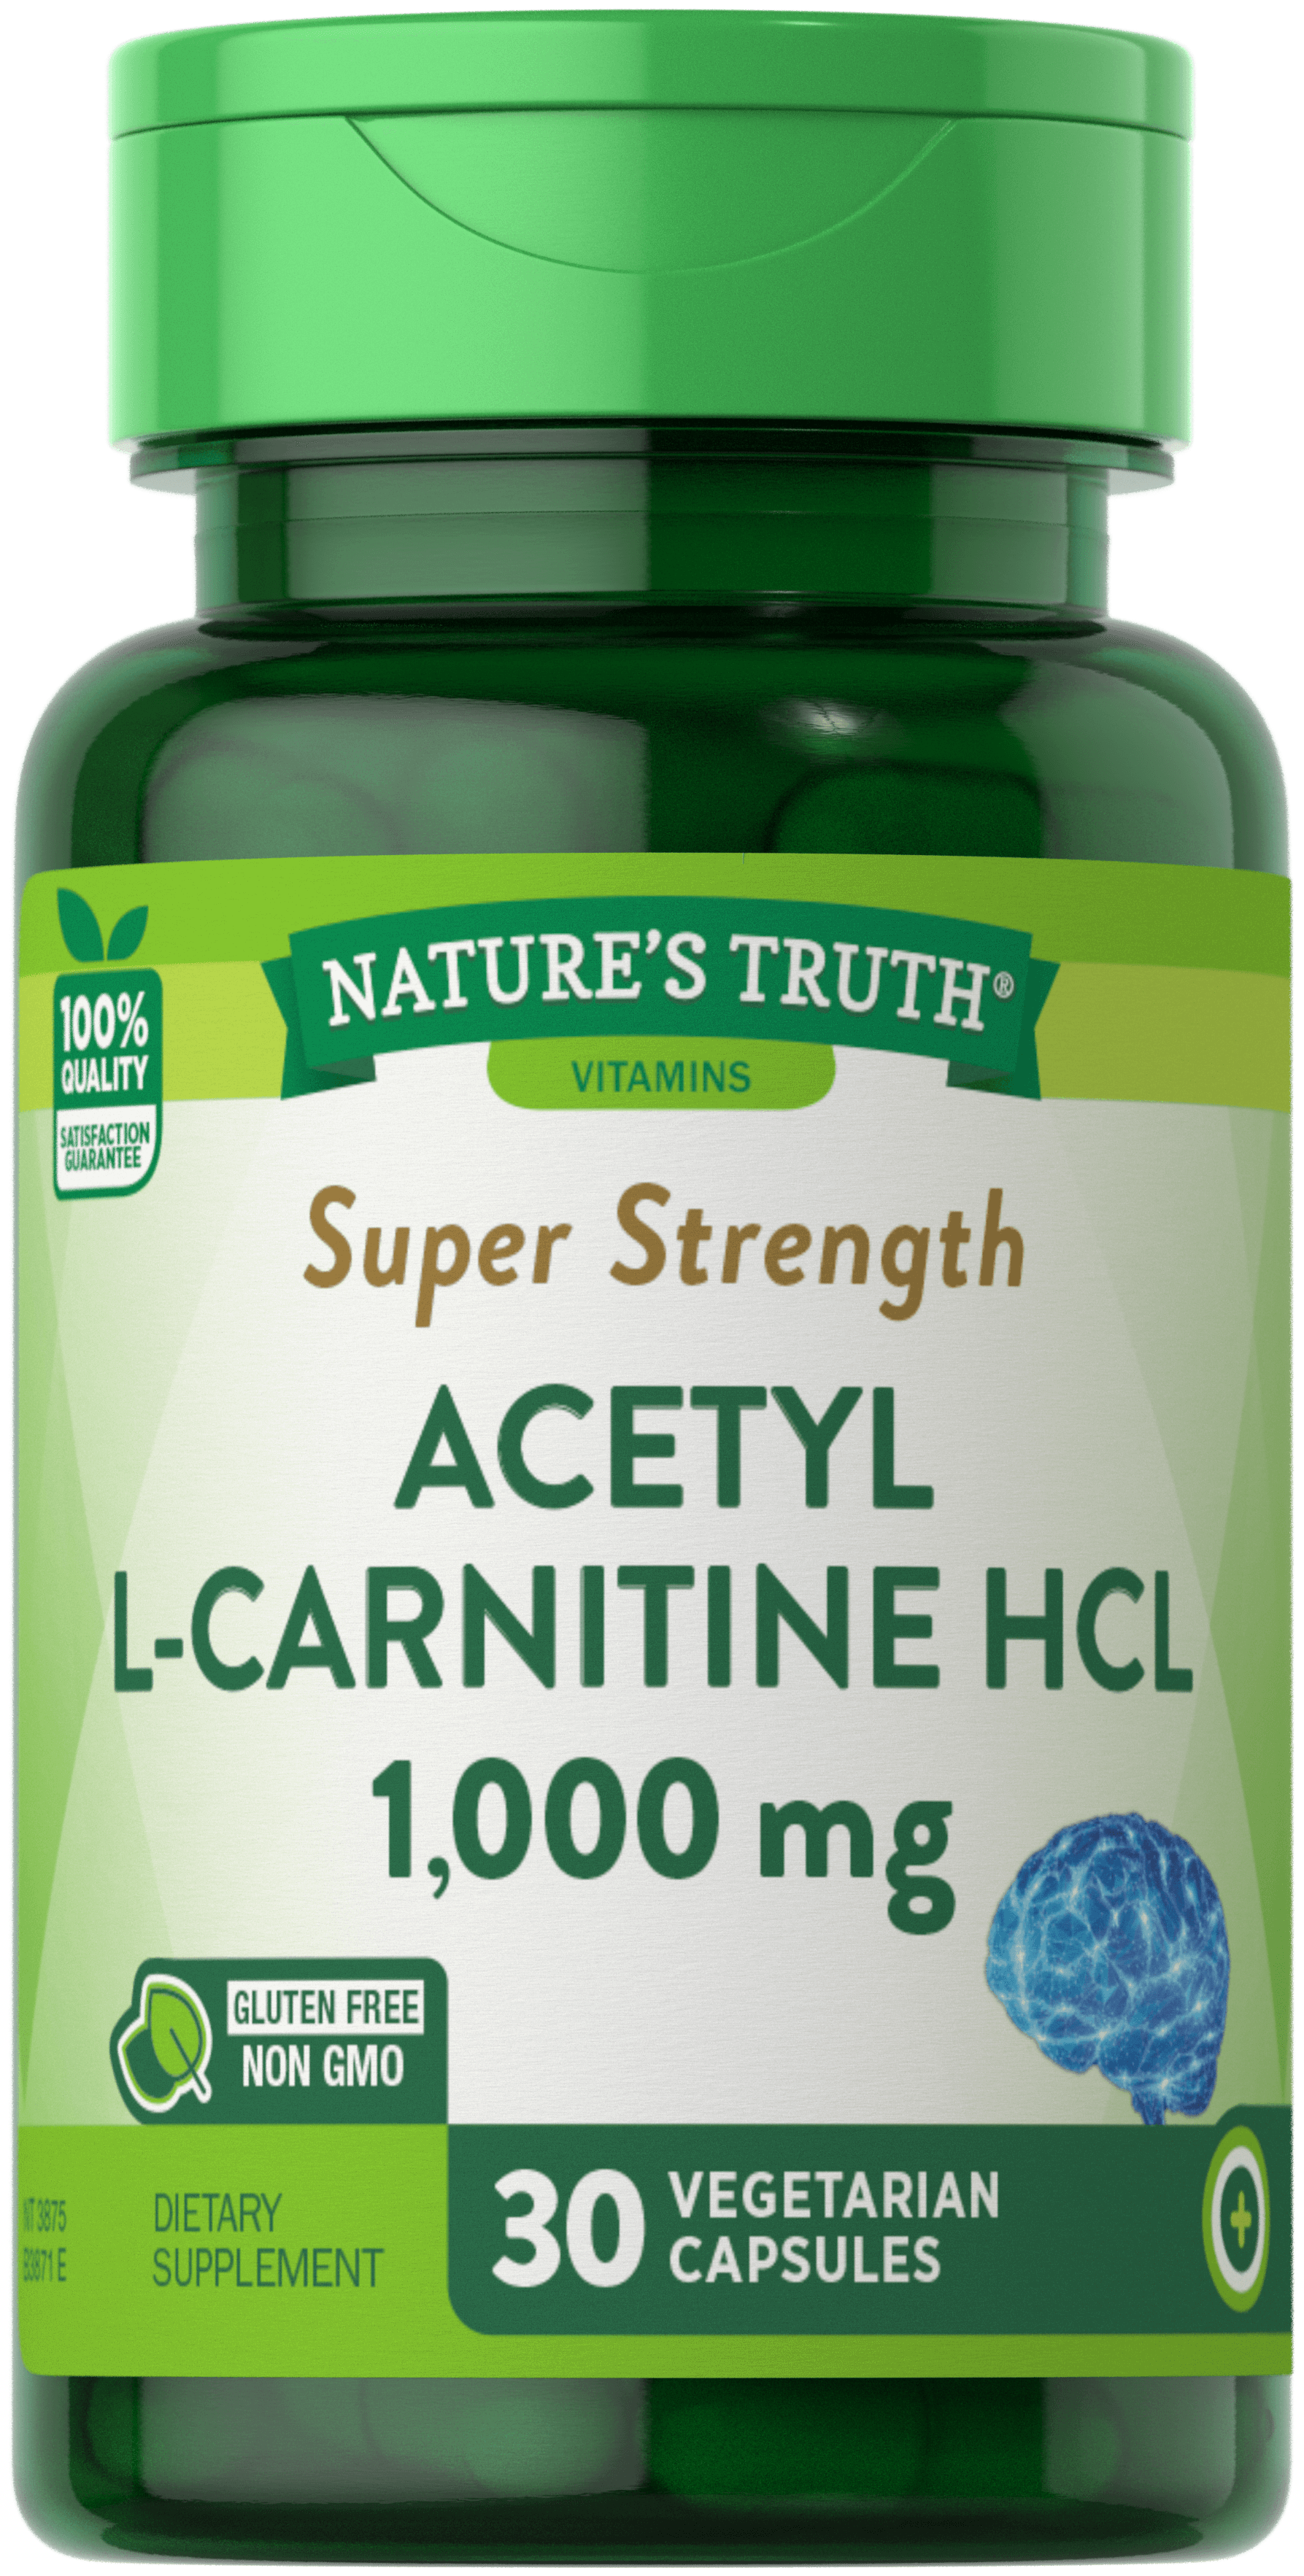 Acetyl L-Carnitine HCL <br>1,000 mg